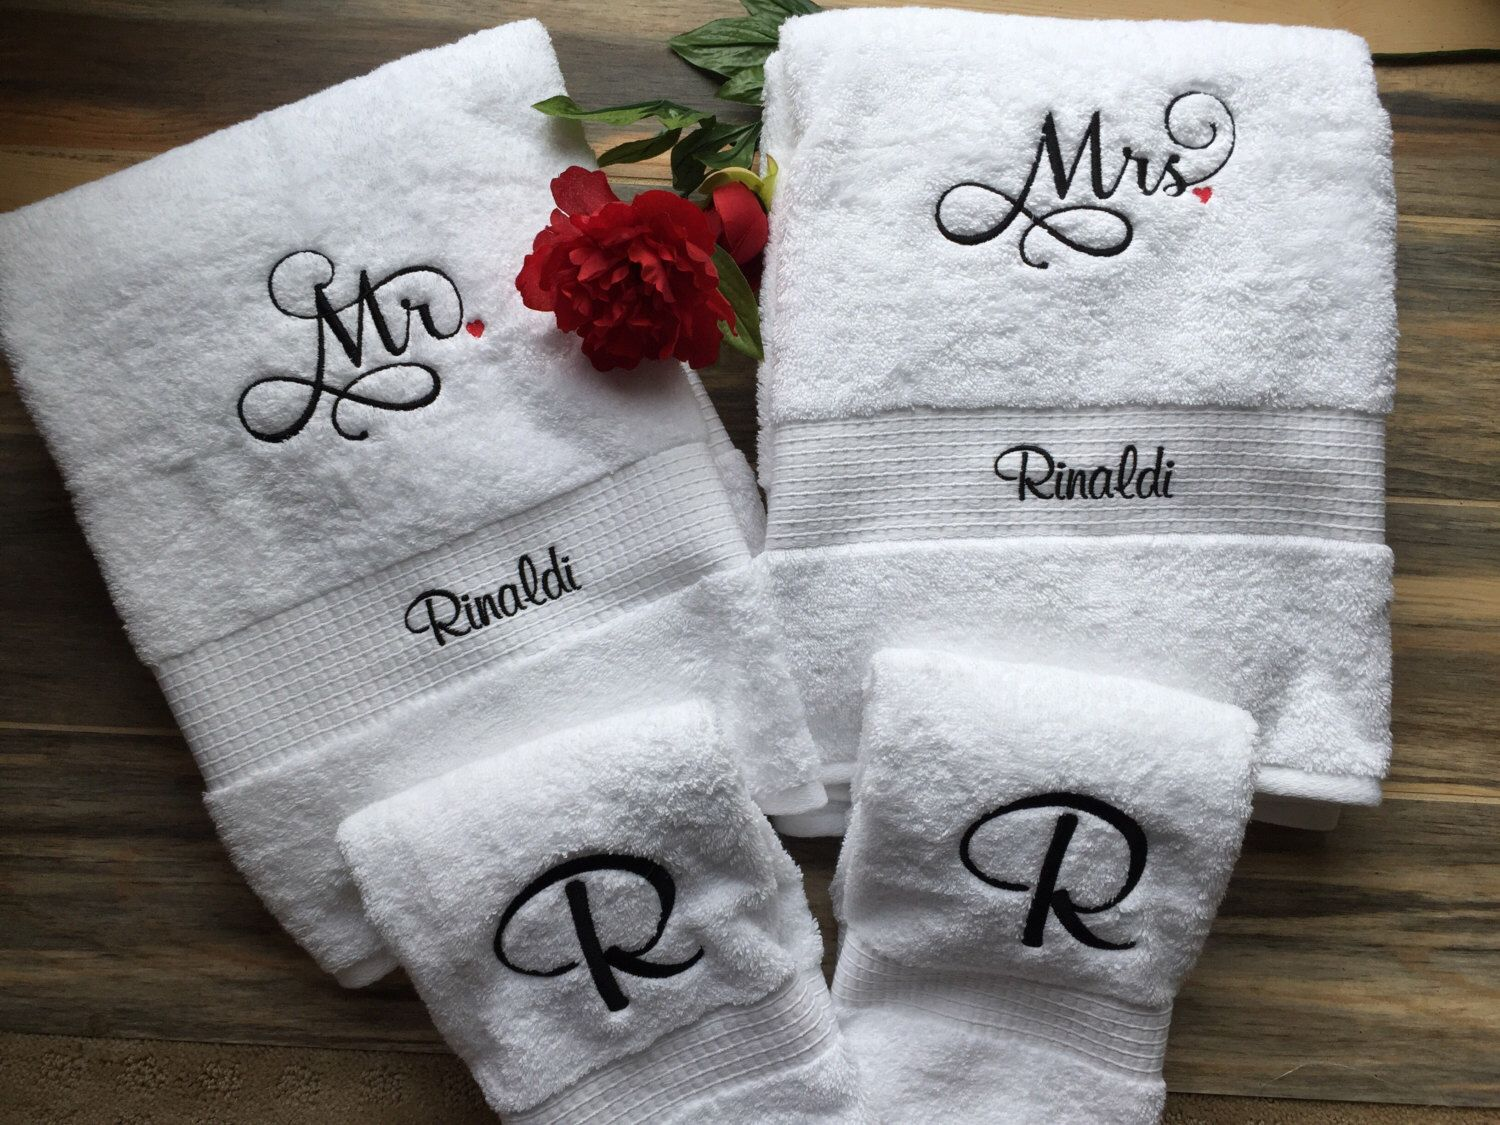 King and Queen Towel Sets Personalized Gift Wedding Bride and Groom His /& Hers